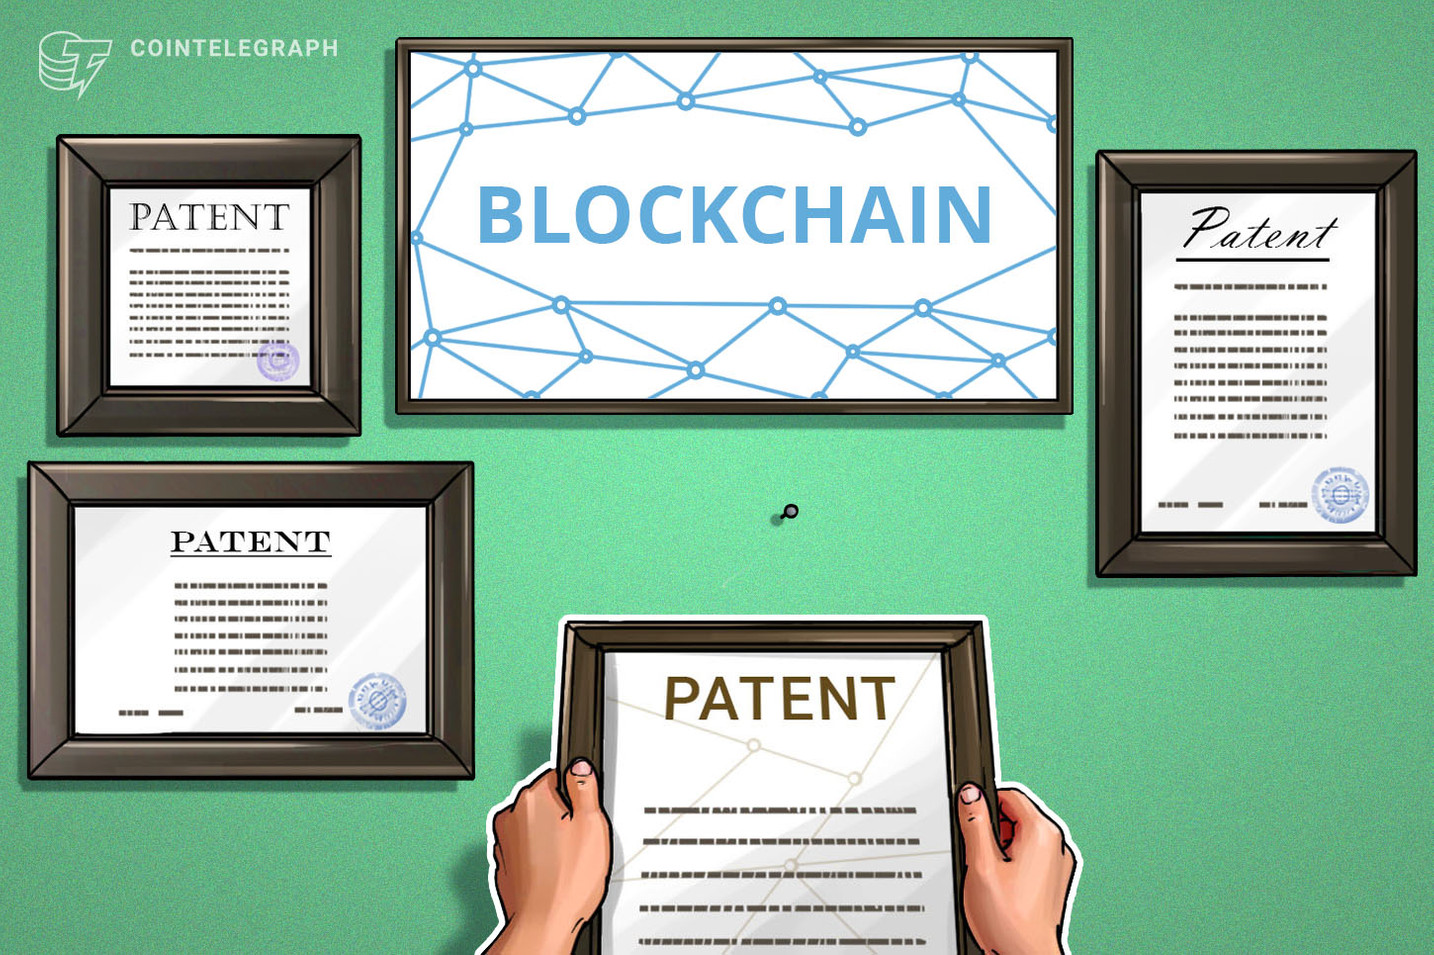 South Korea's Largest Foreign Exchange Bank Files 46 Blockchain-Related Patents